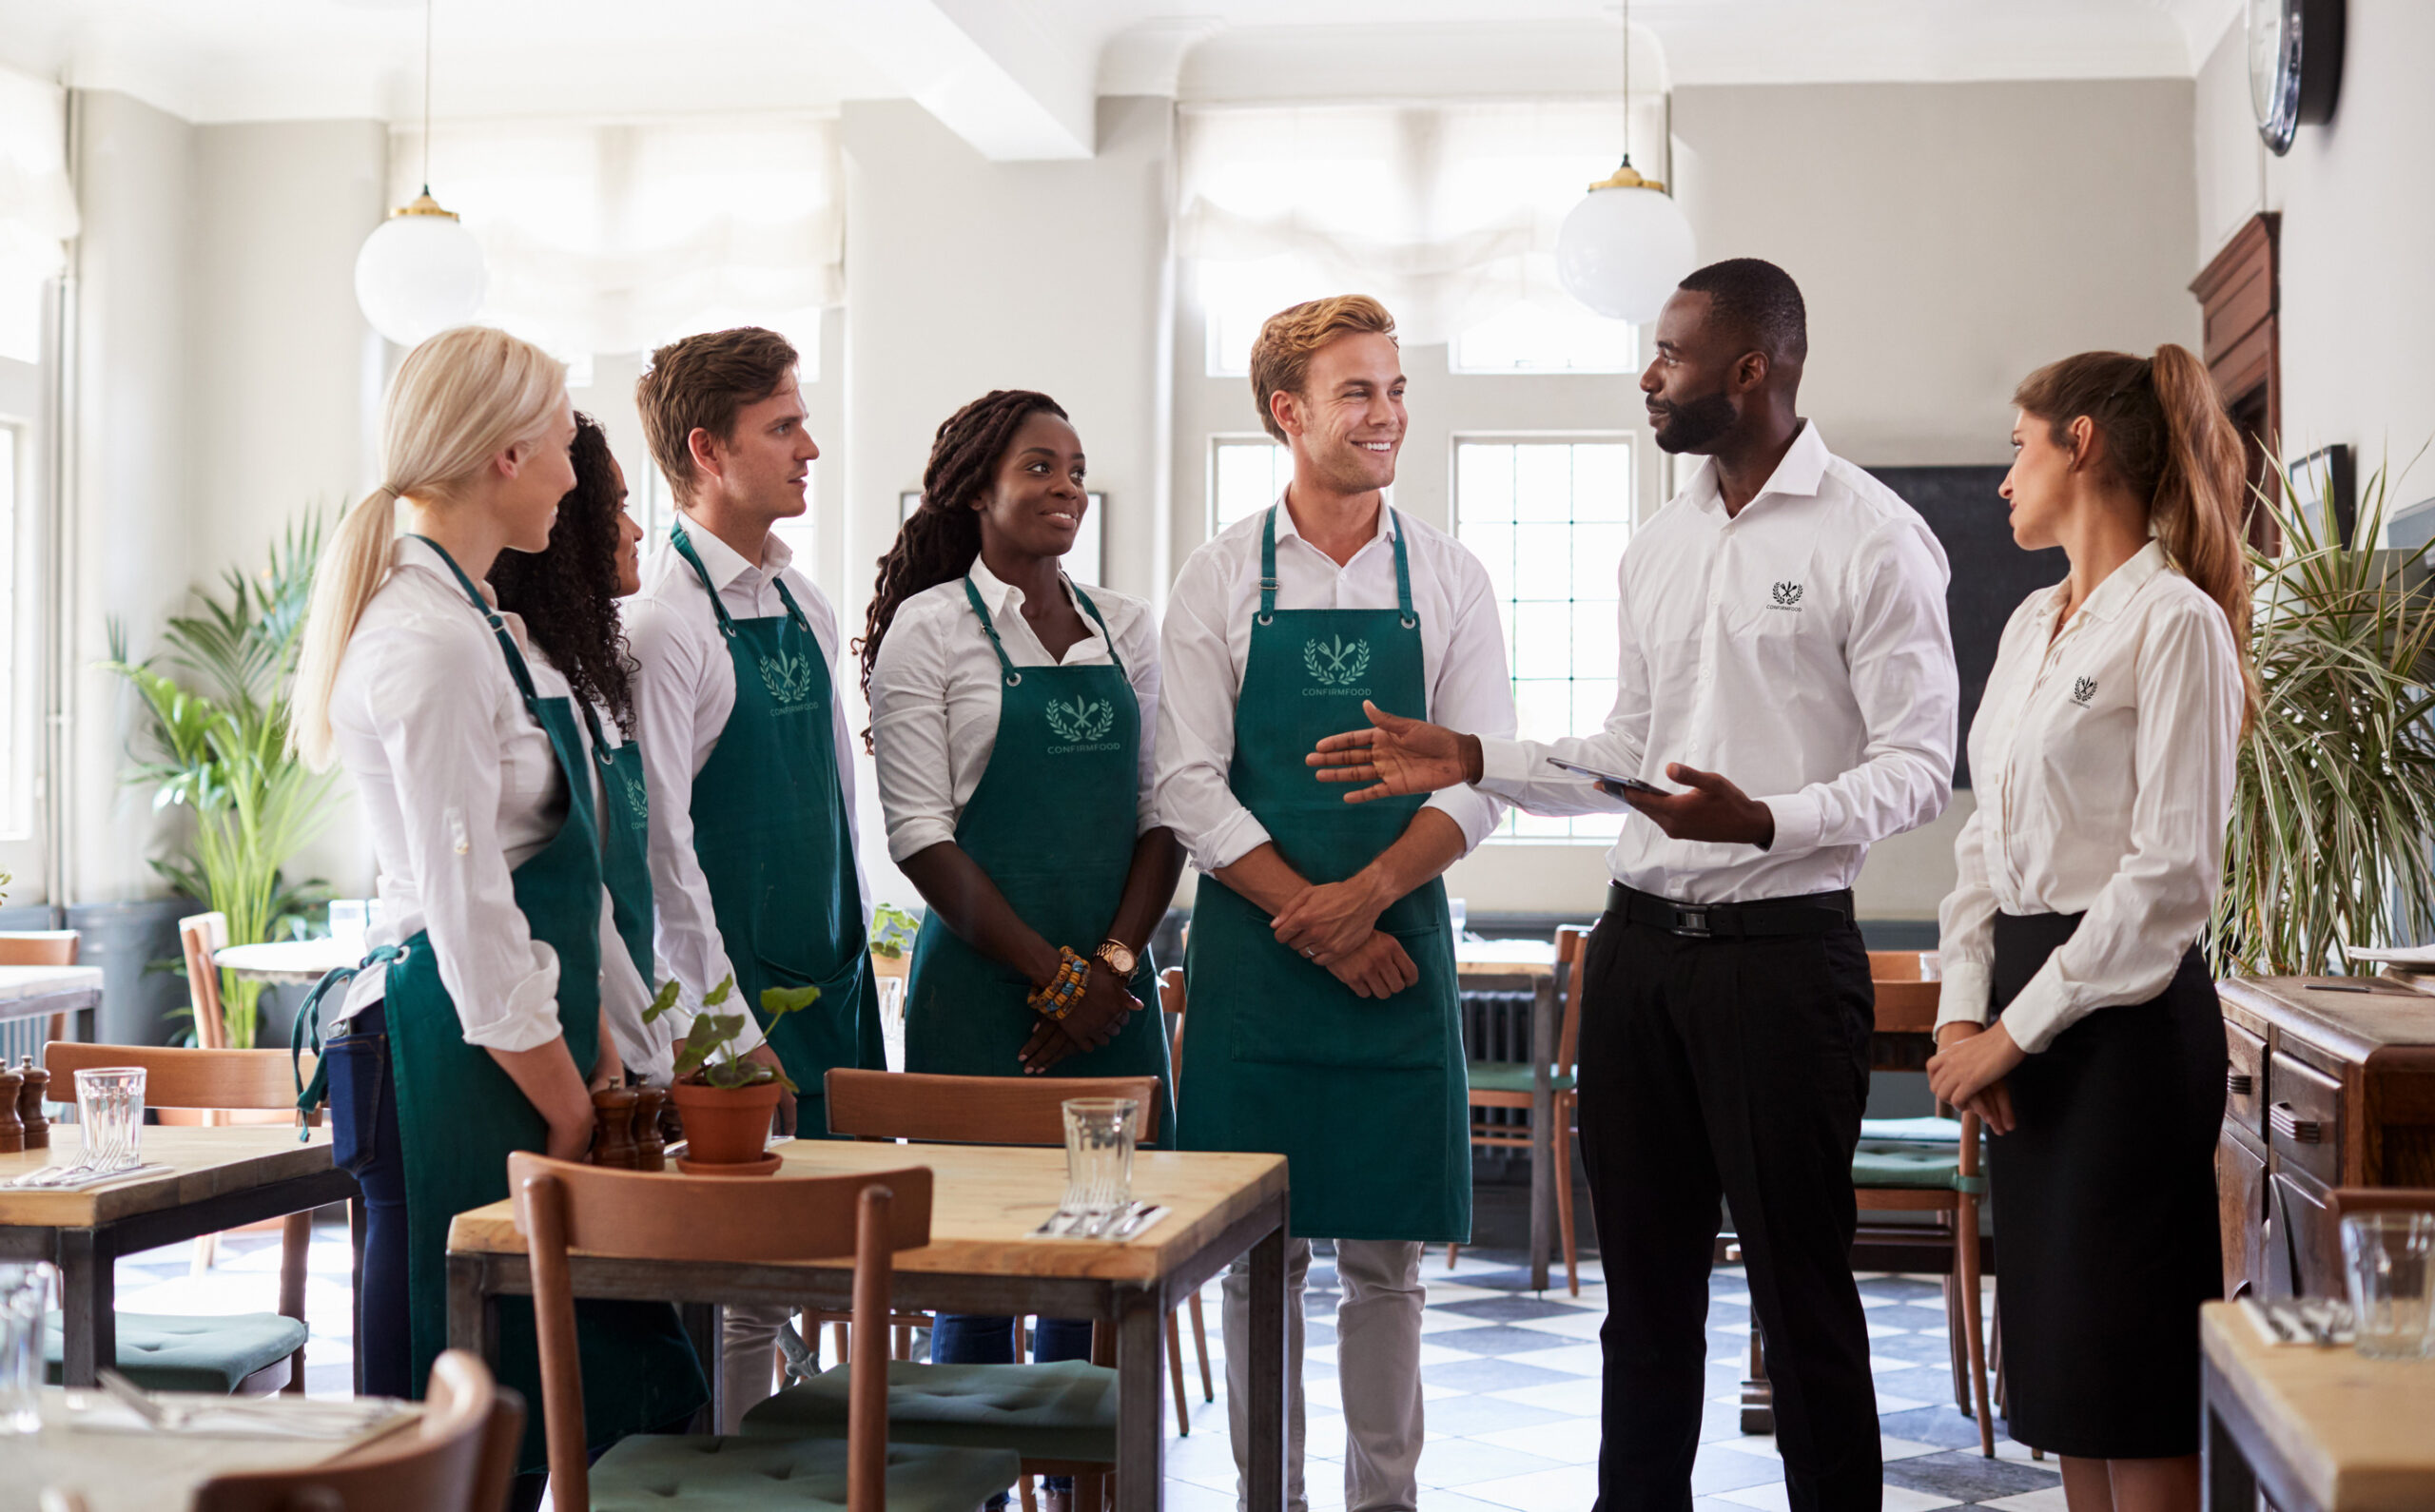 What to Include in Your Restaurant Staff Uniforms